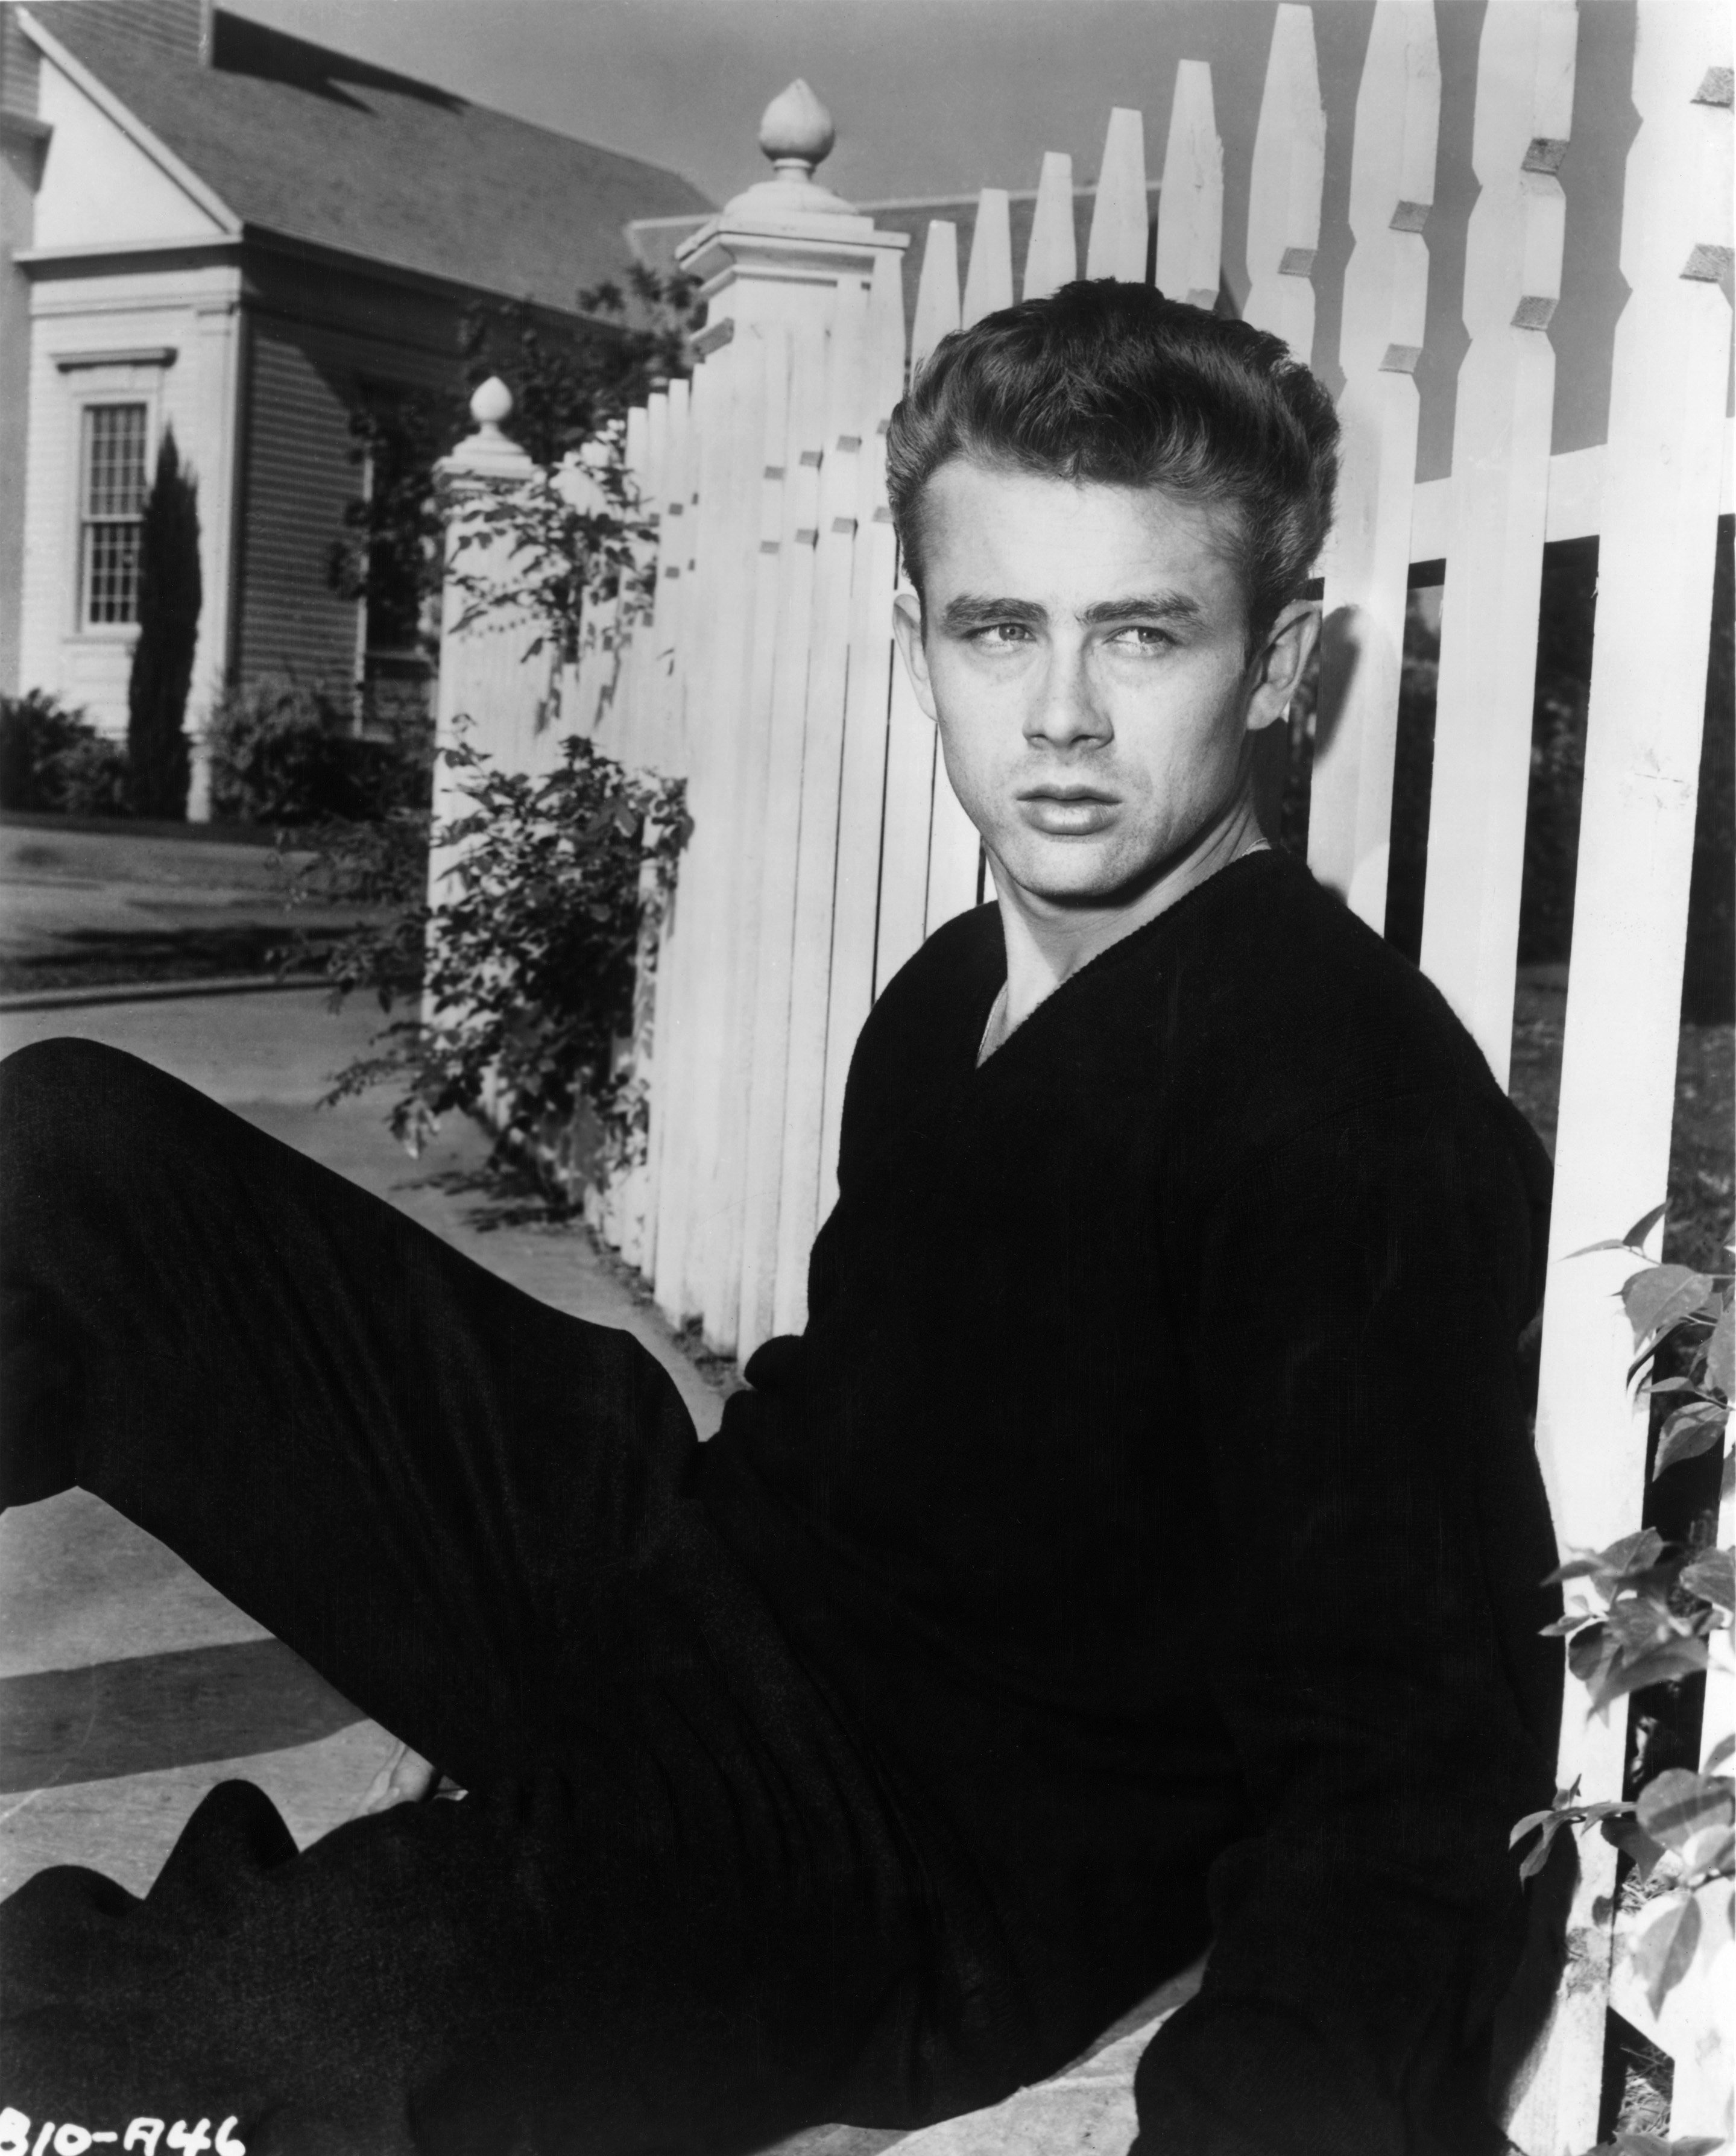 Actor James Dean poses for a photo on the set of the Warner Bros film 'East Of Eden' in 1954 in California. | Source: Getty Images